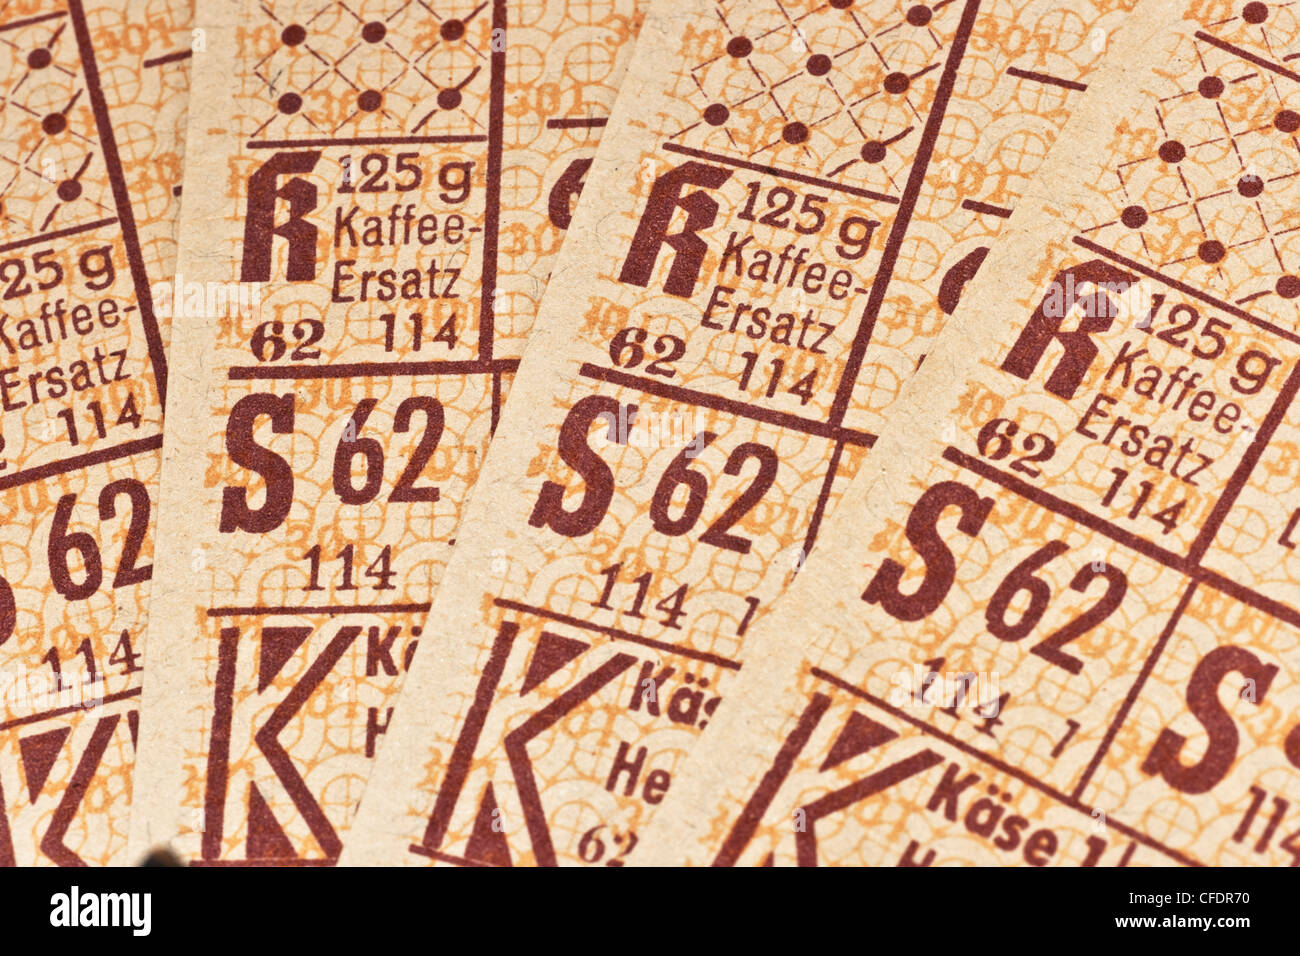 coffee substitute food ration cards, Hesse 1948, Bizone, Germany - Stock Image